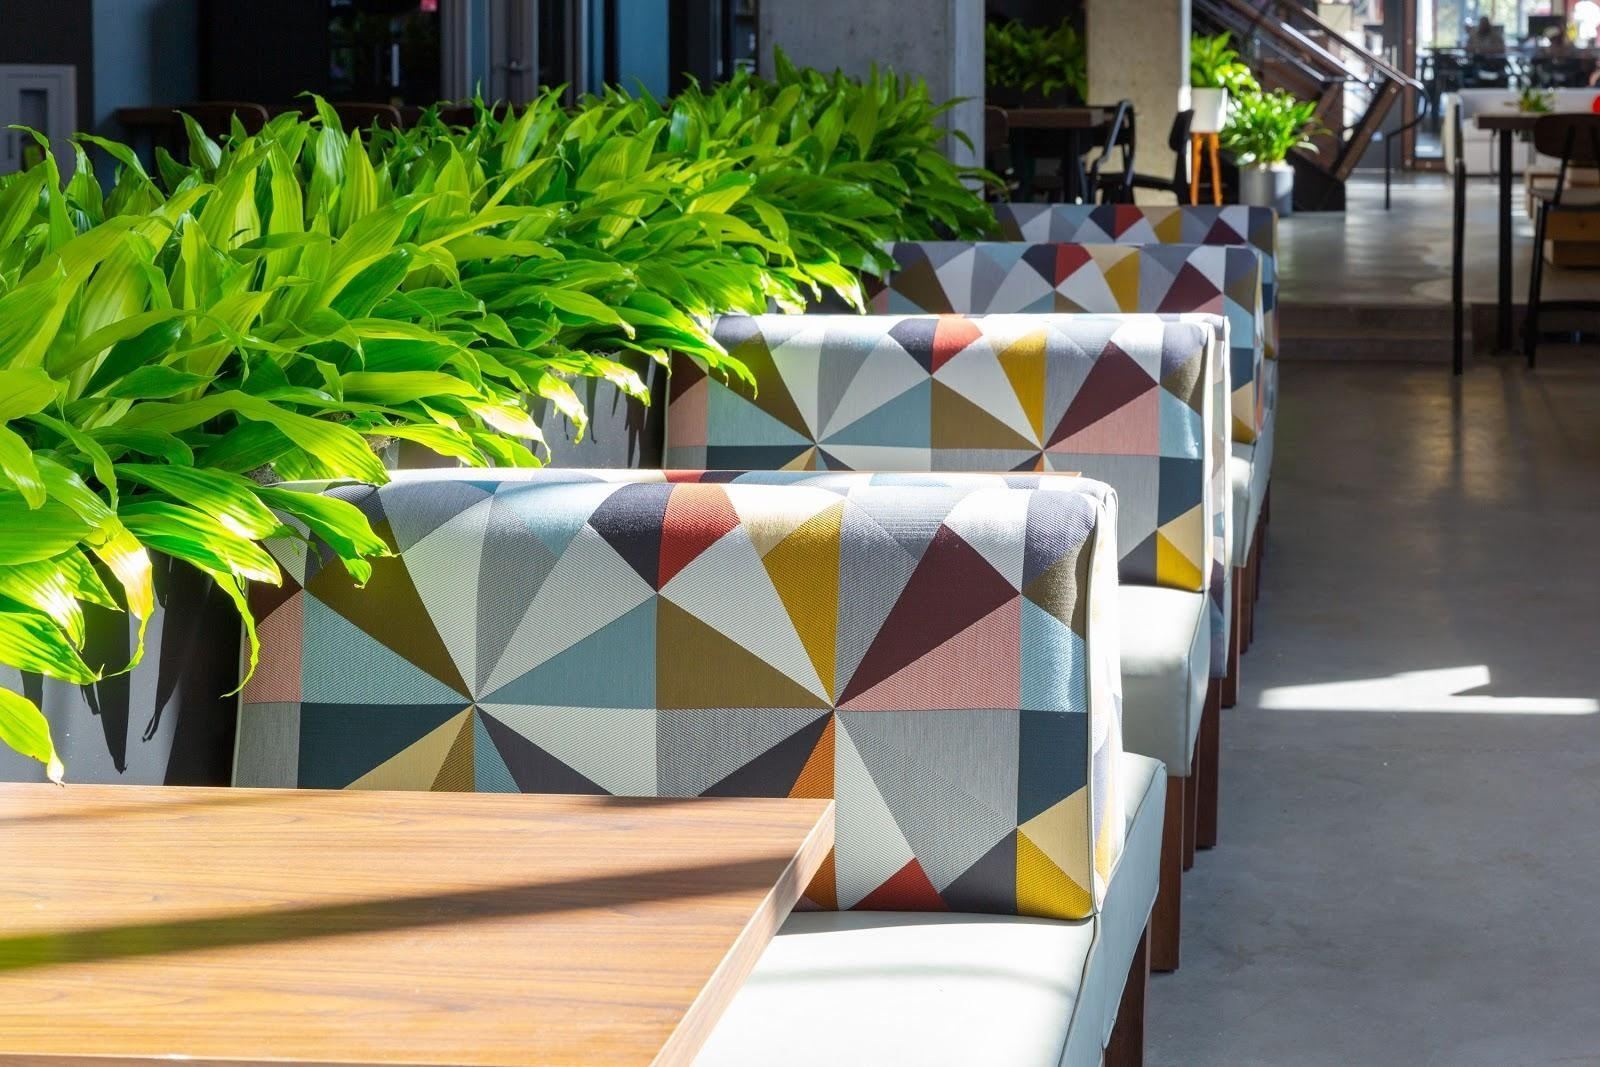 geometric colorful patterned benches moveable planters outlets coworking space east bay ca